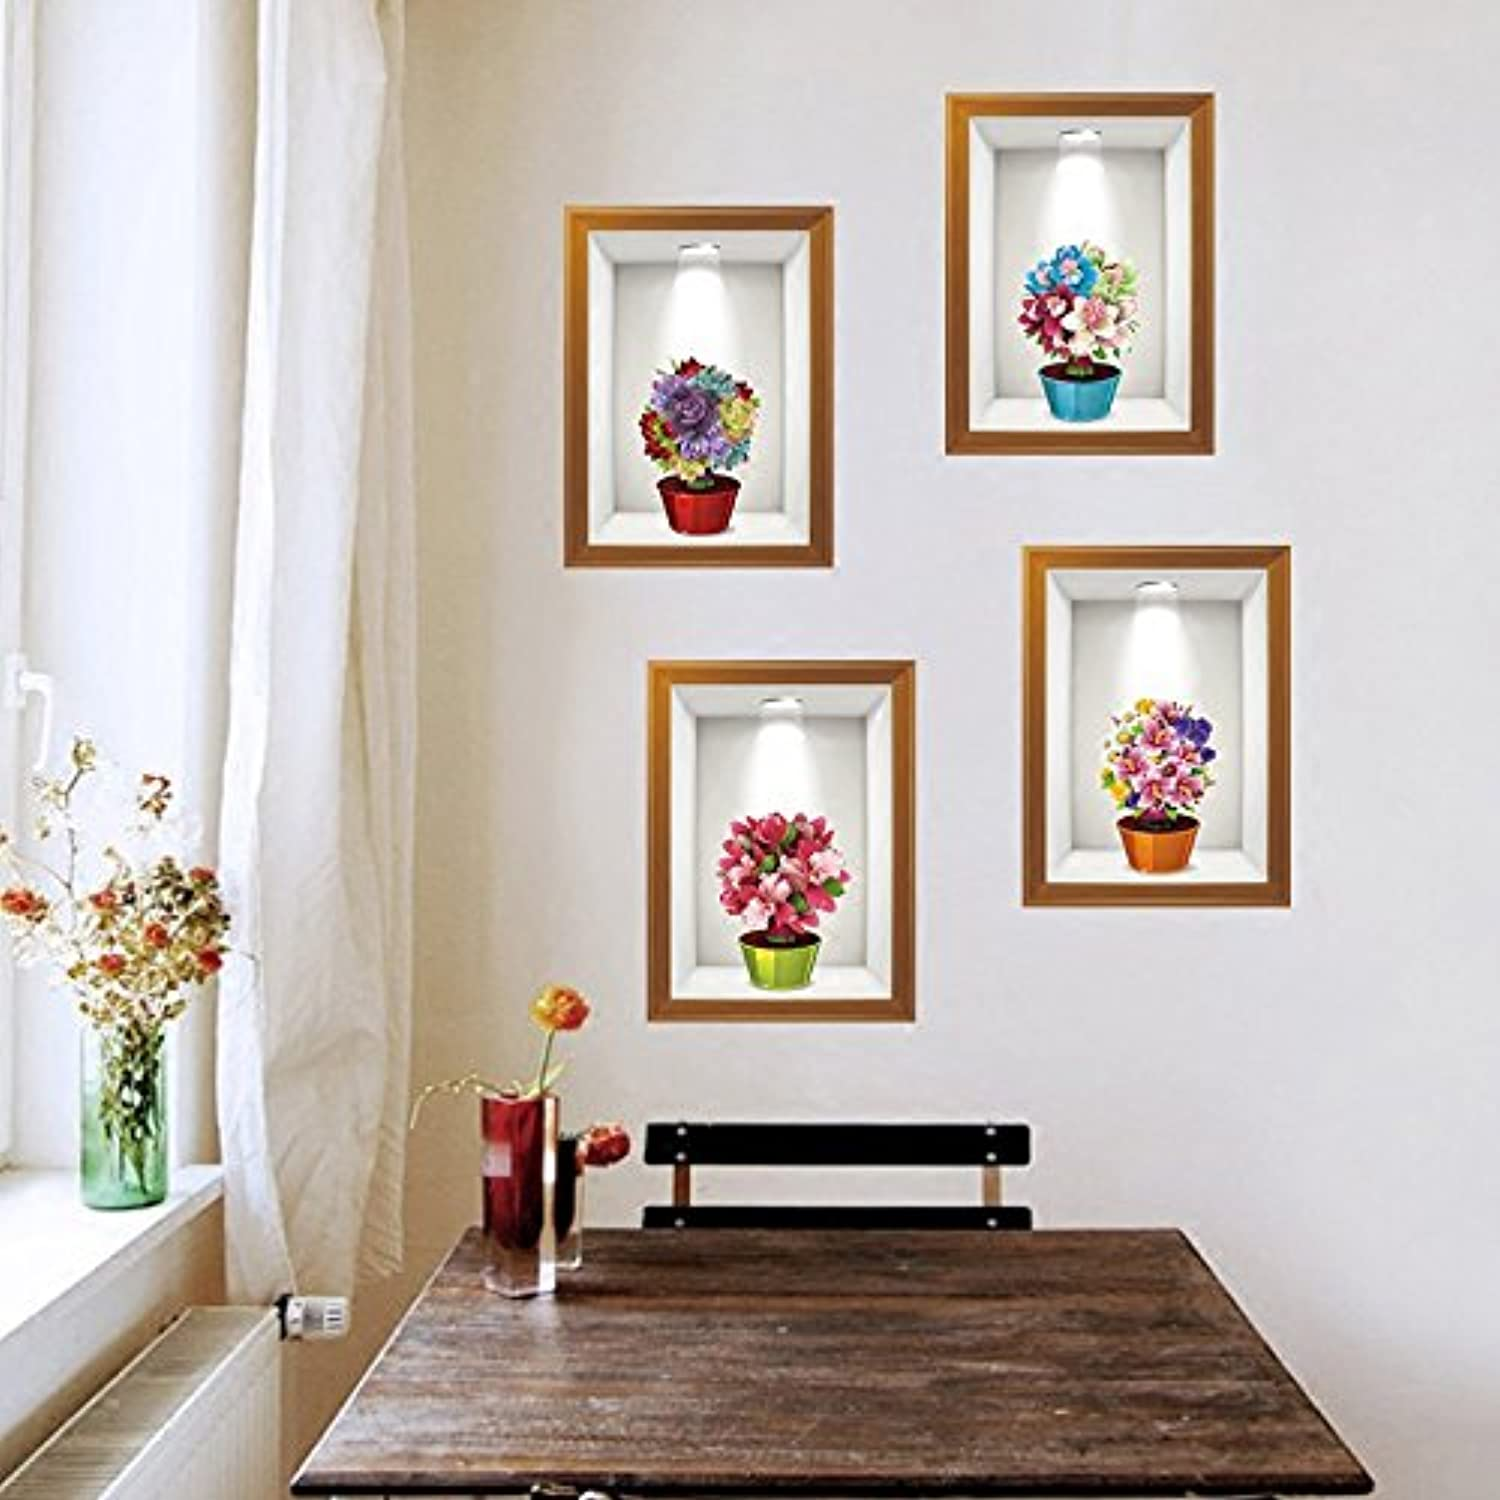 d40ae57159181 Znzbzt Emulation Flower Picture Frame Sticker Warm and Creative Wall ...